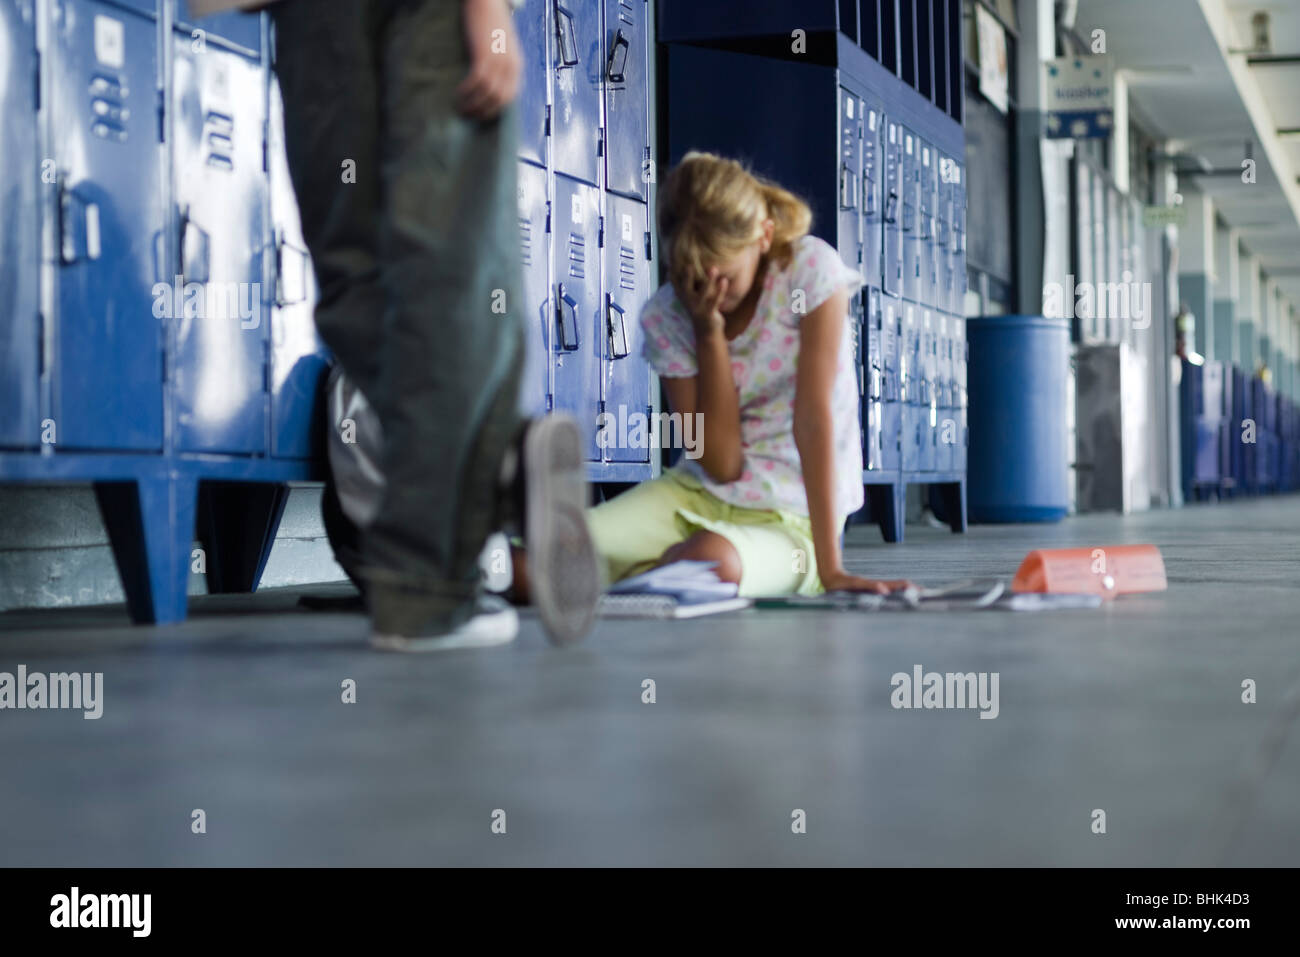 Junior high student sitting on floor crying, boy standing by watching - Stock Image